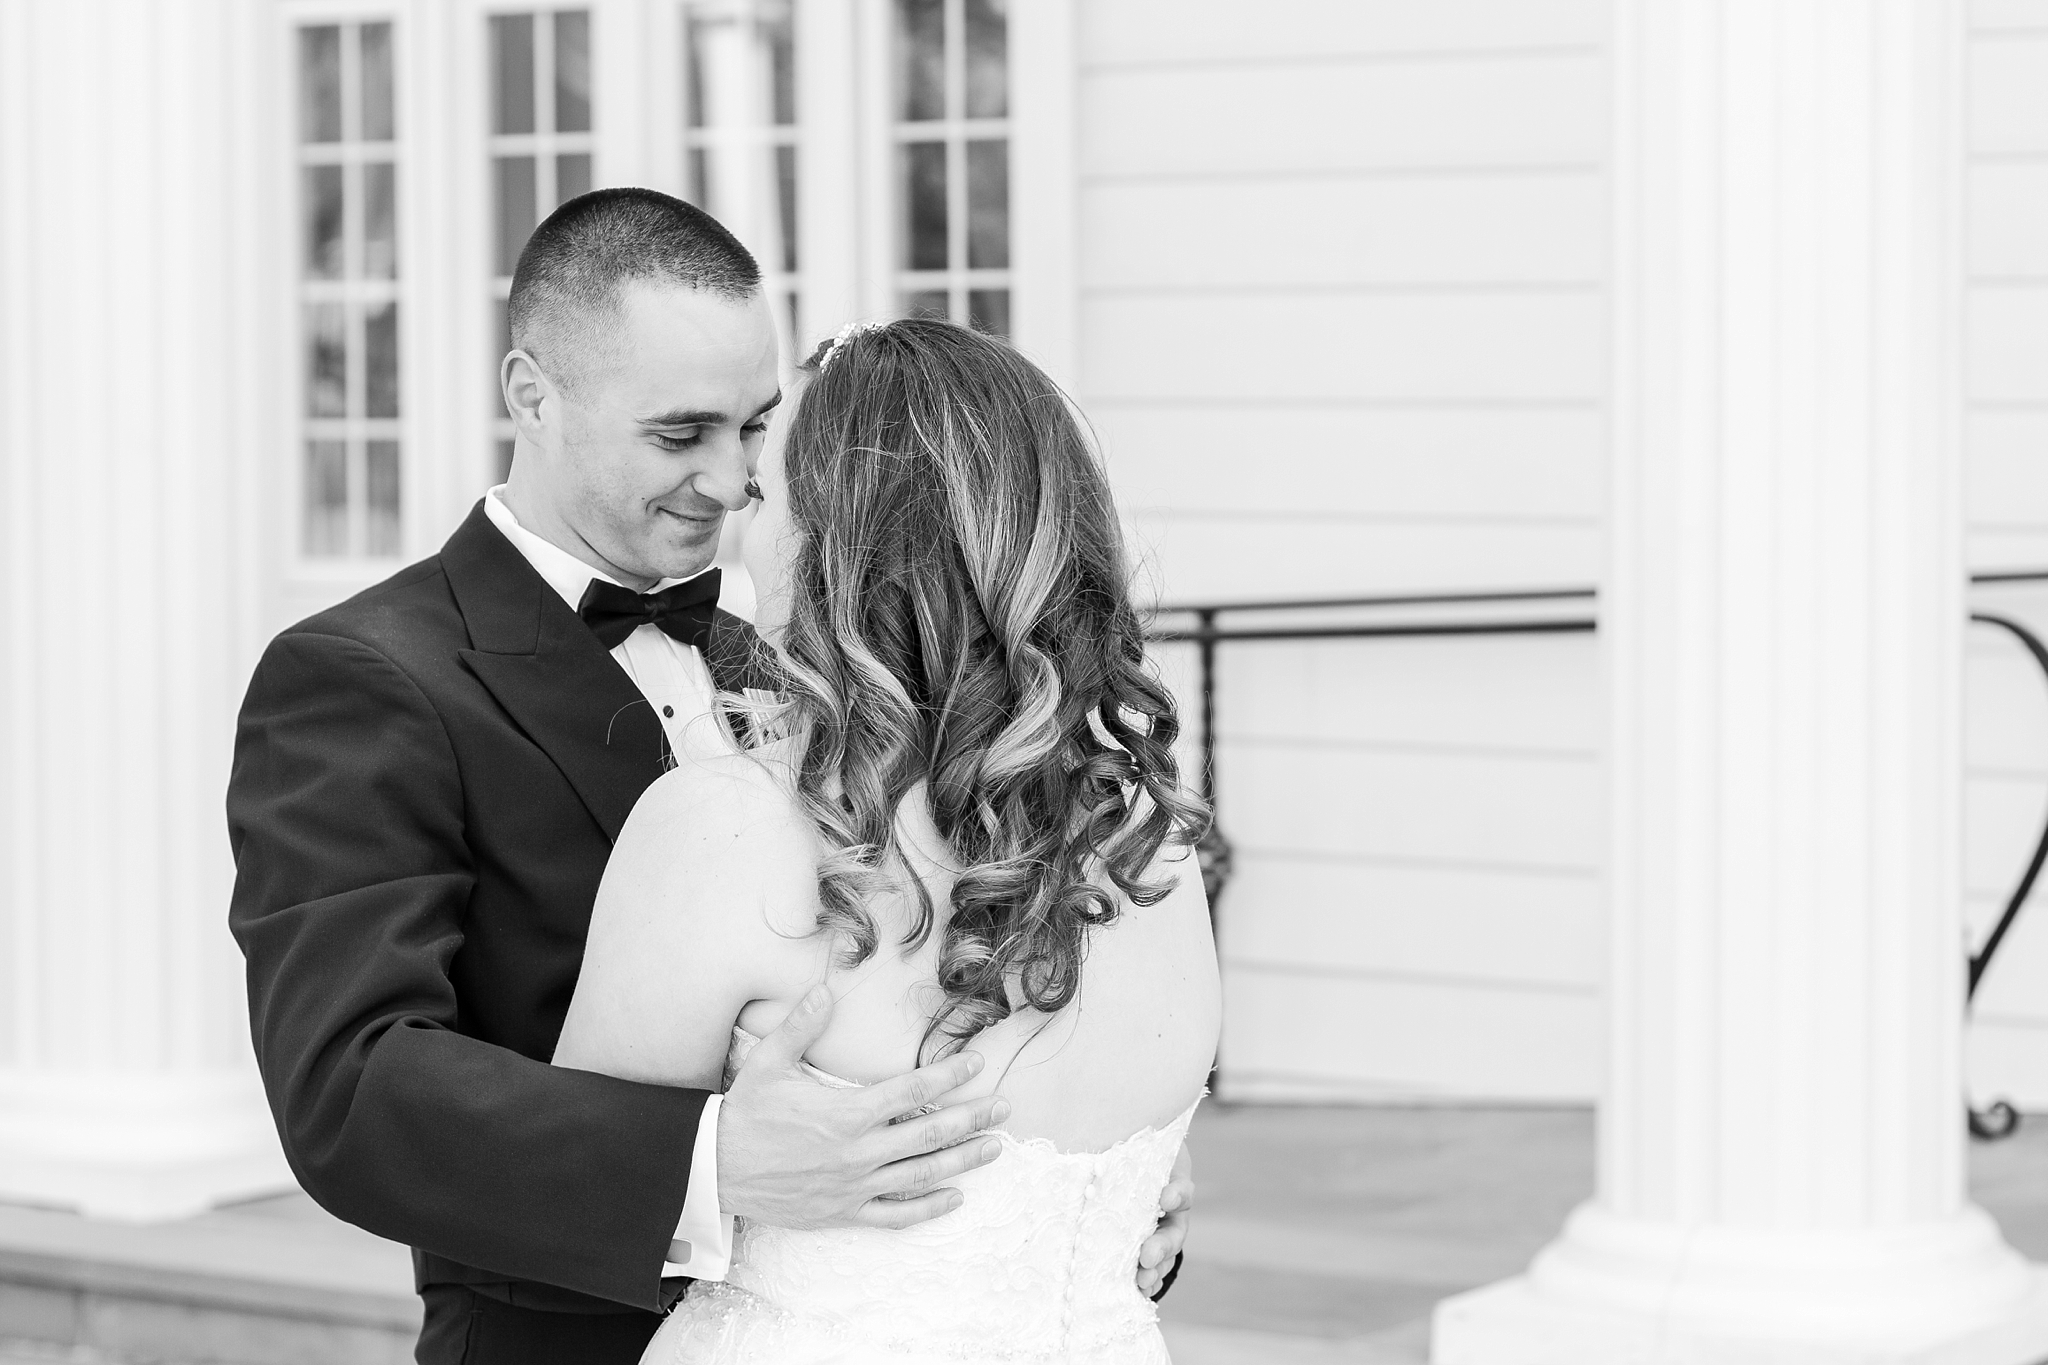 romantic-artful-candid-wedding-photos-in-st-clair-shores-at-the-white-house-wedding-chapel-by-courtney-carolyn-photography_0018.jpg